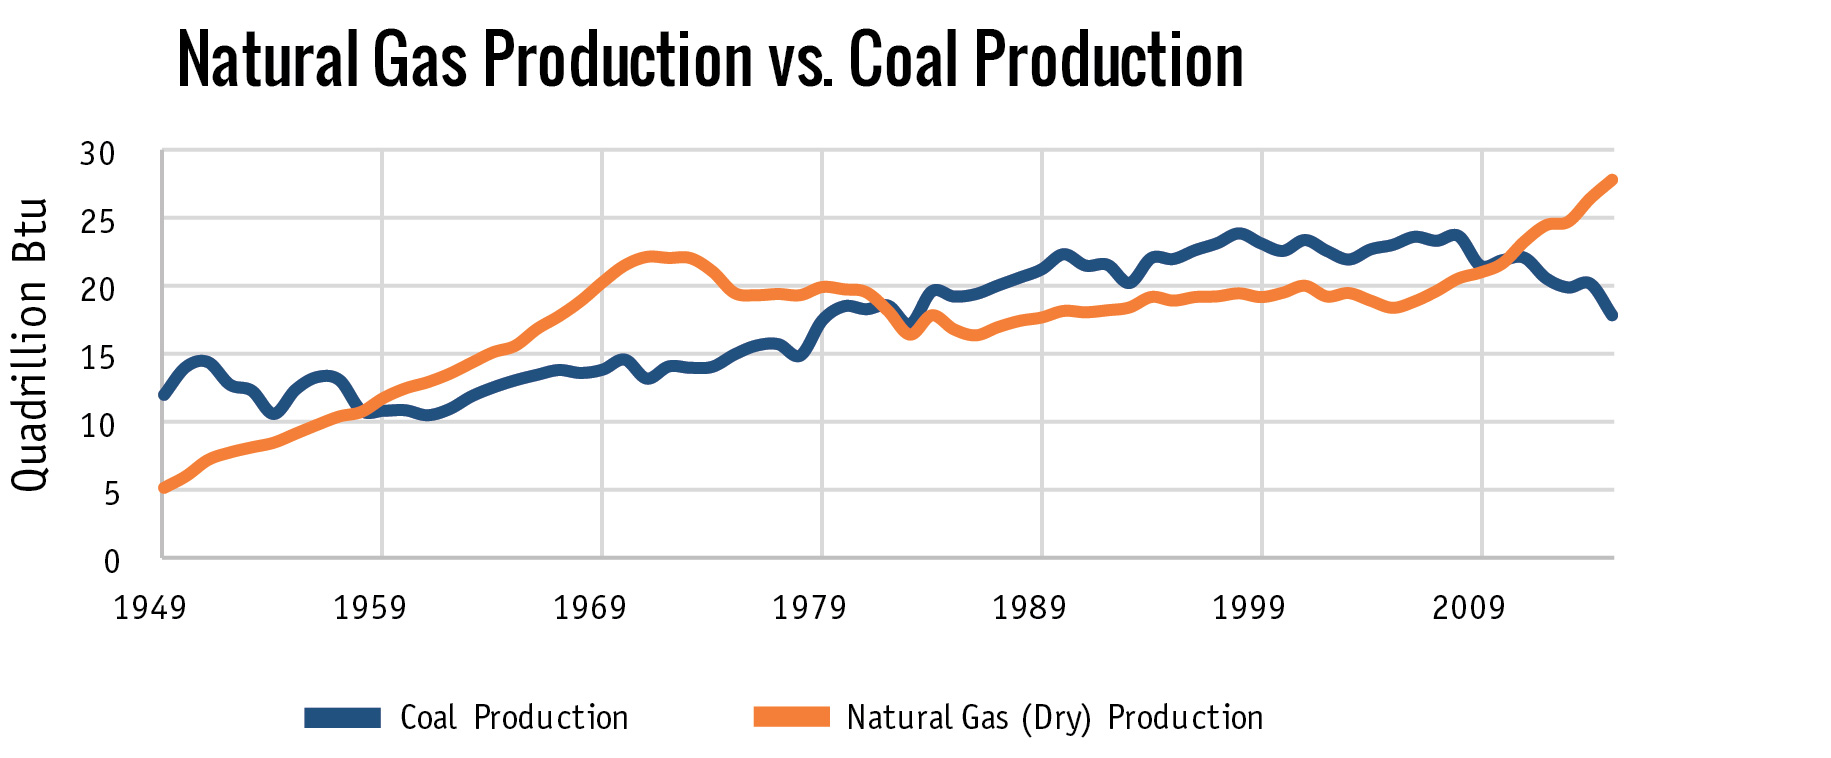 Natural Gas Production vs. Coal Production